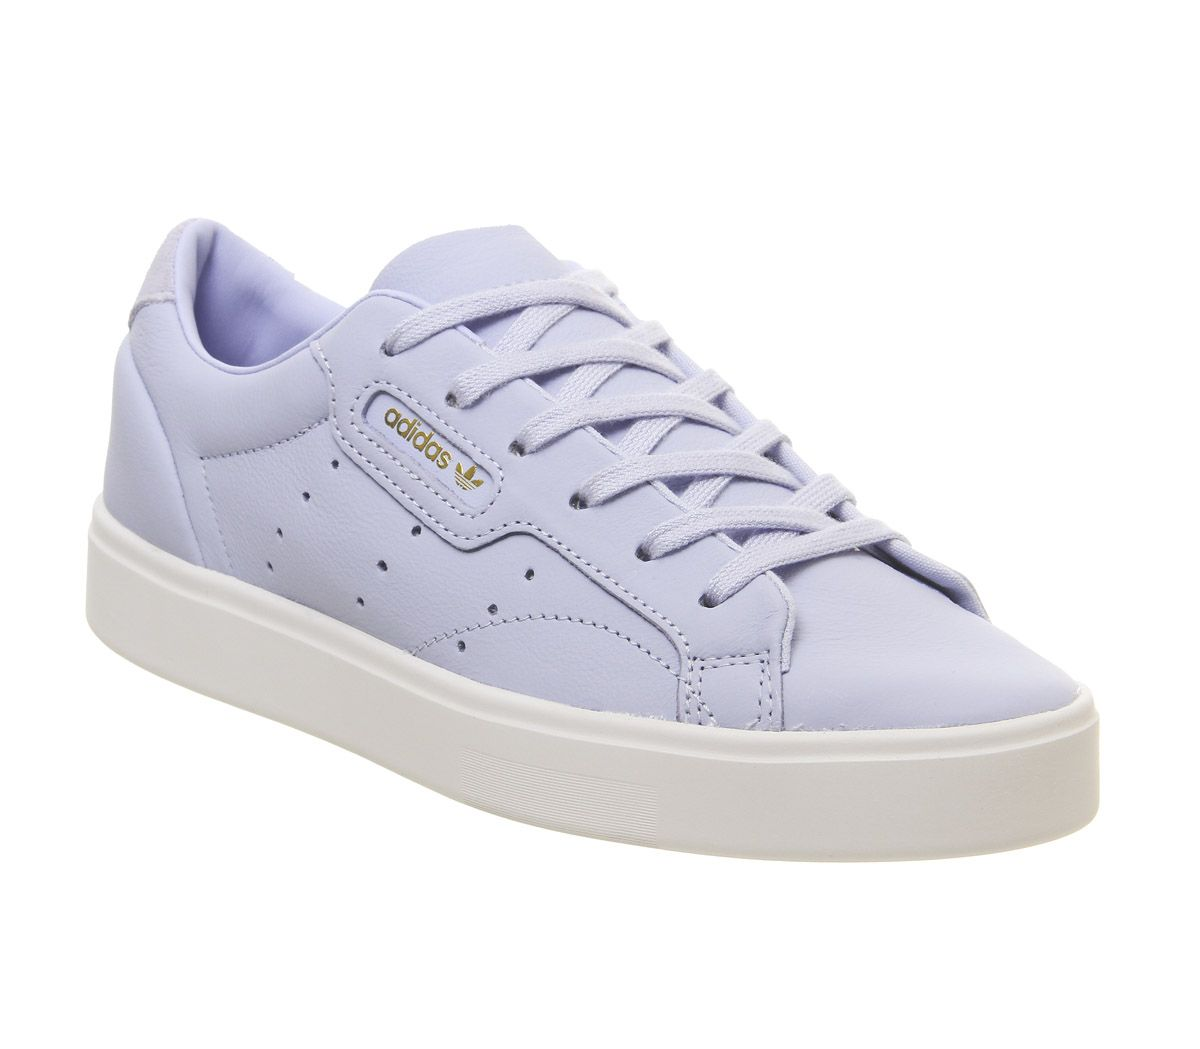 b826cc0c adidas Sleek Trainers Periwinkle Crystal White - Hers trainers